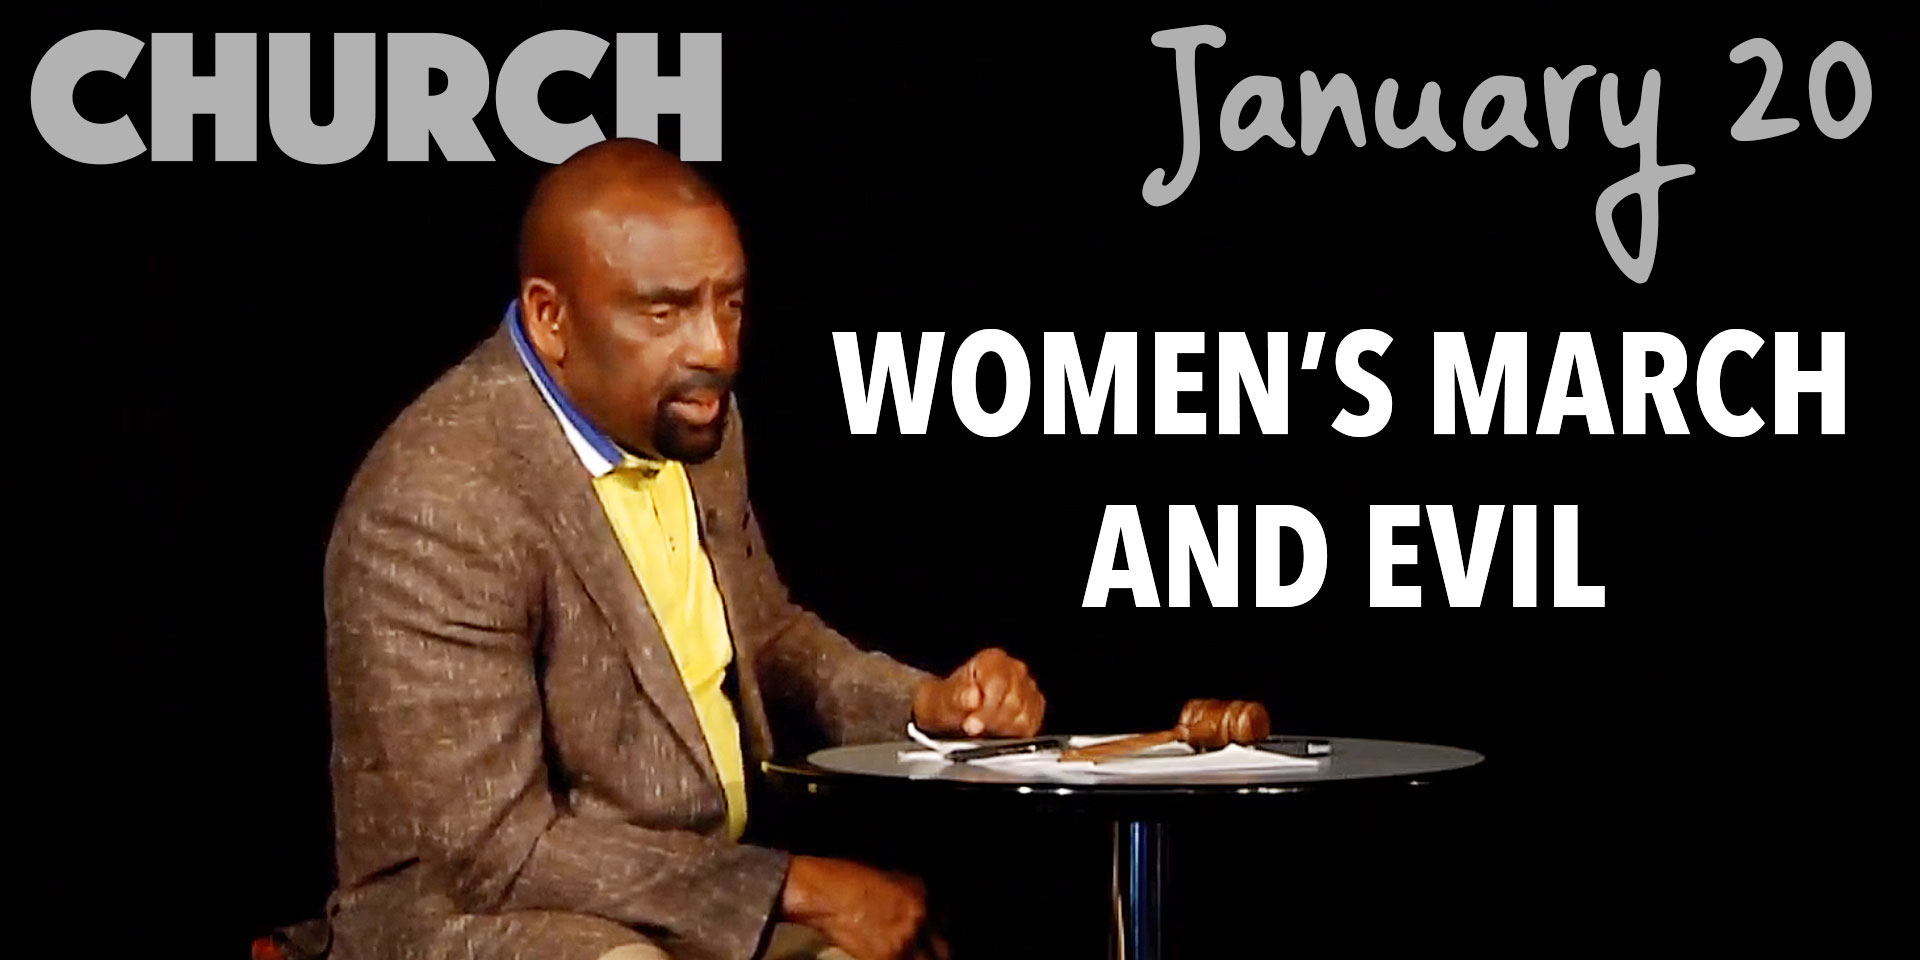 Church Jan 20th, Women's March and Evil